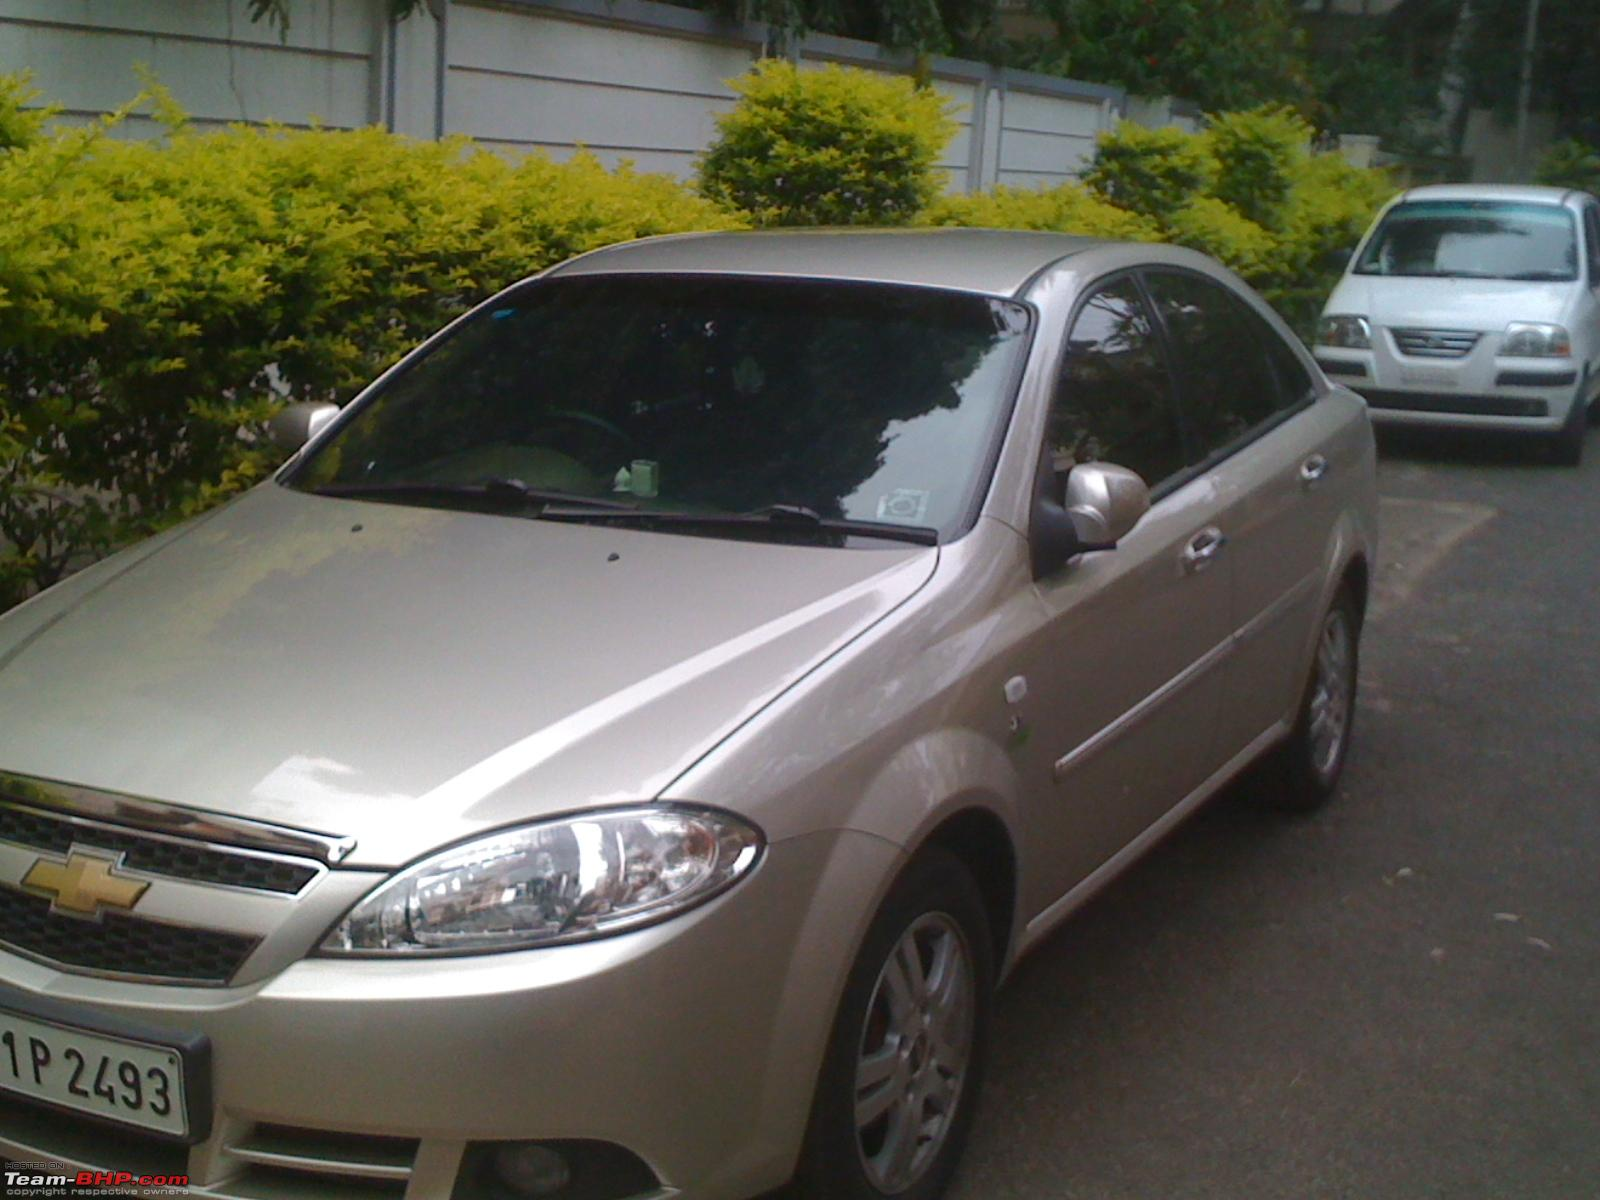 Chevrolet Optra Magnum In India-Price, Photo & Reviews   LifeStyle